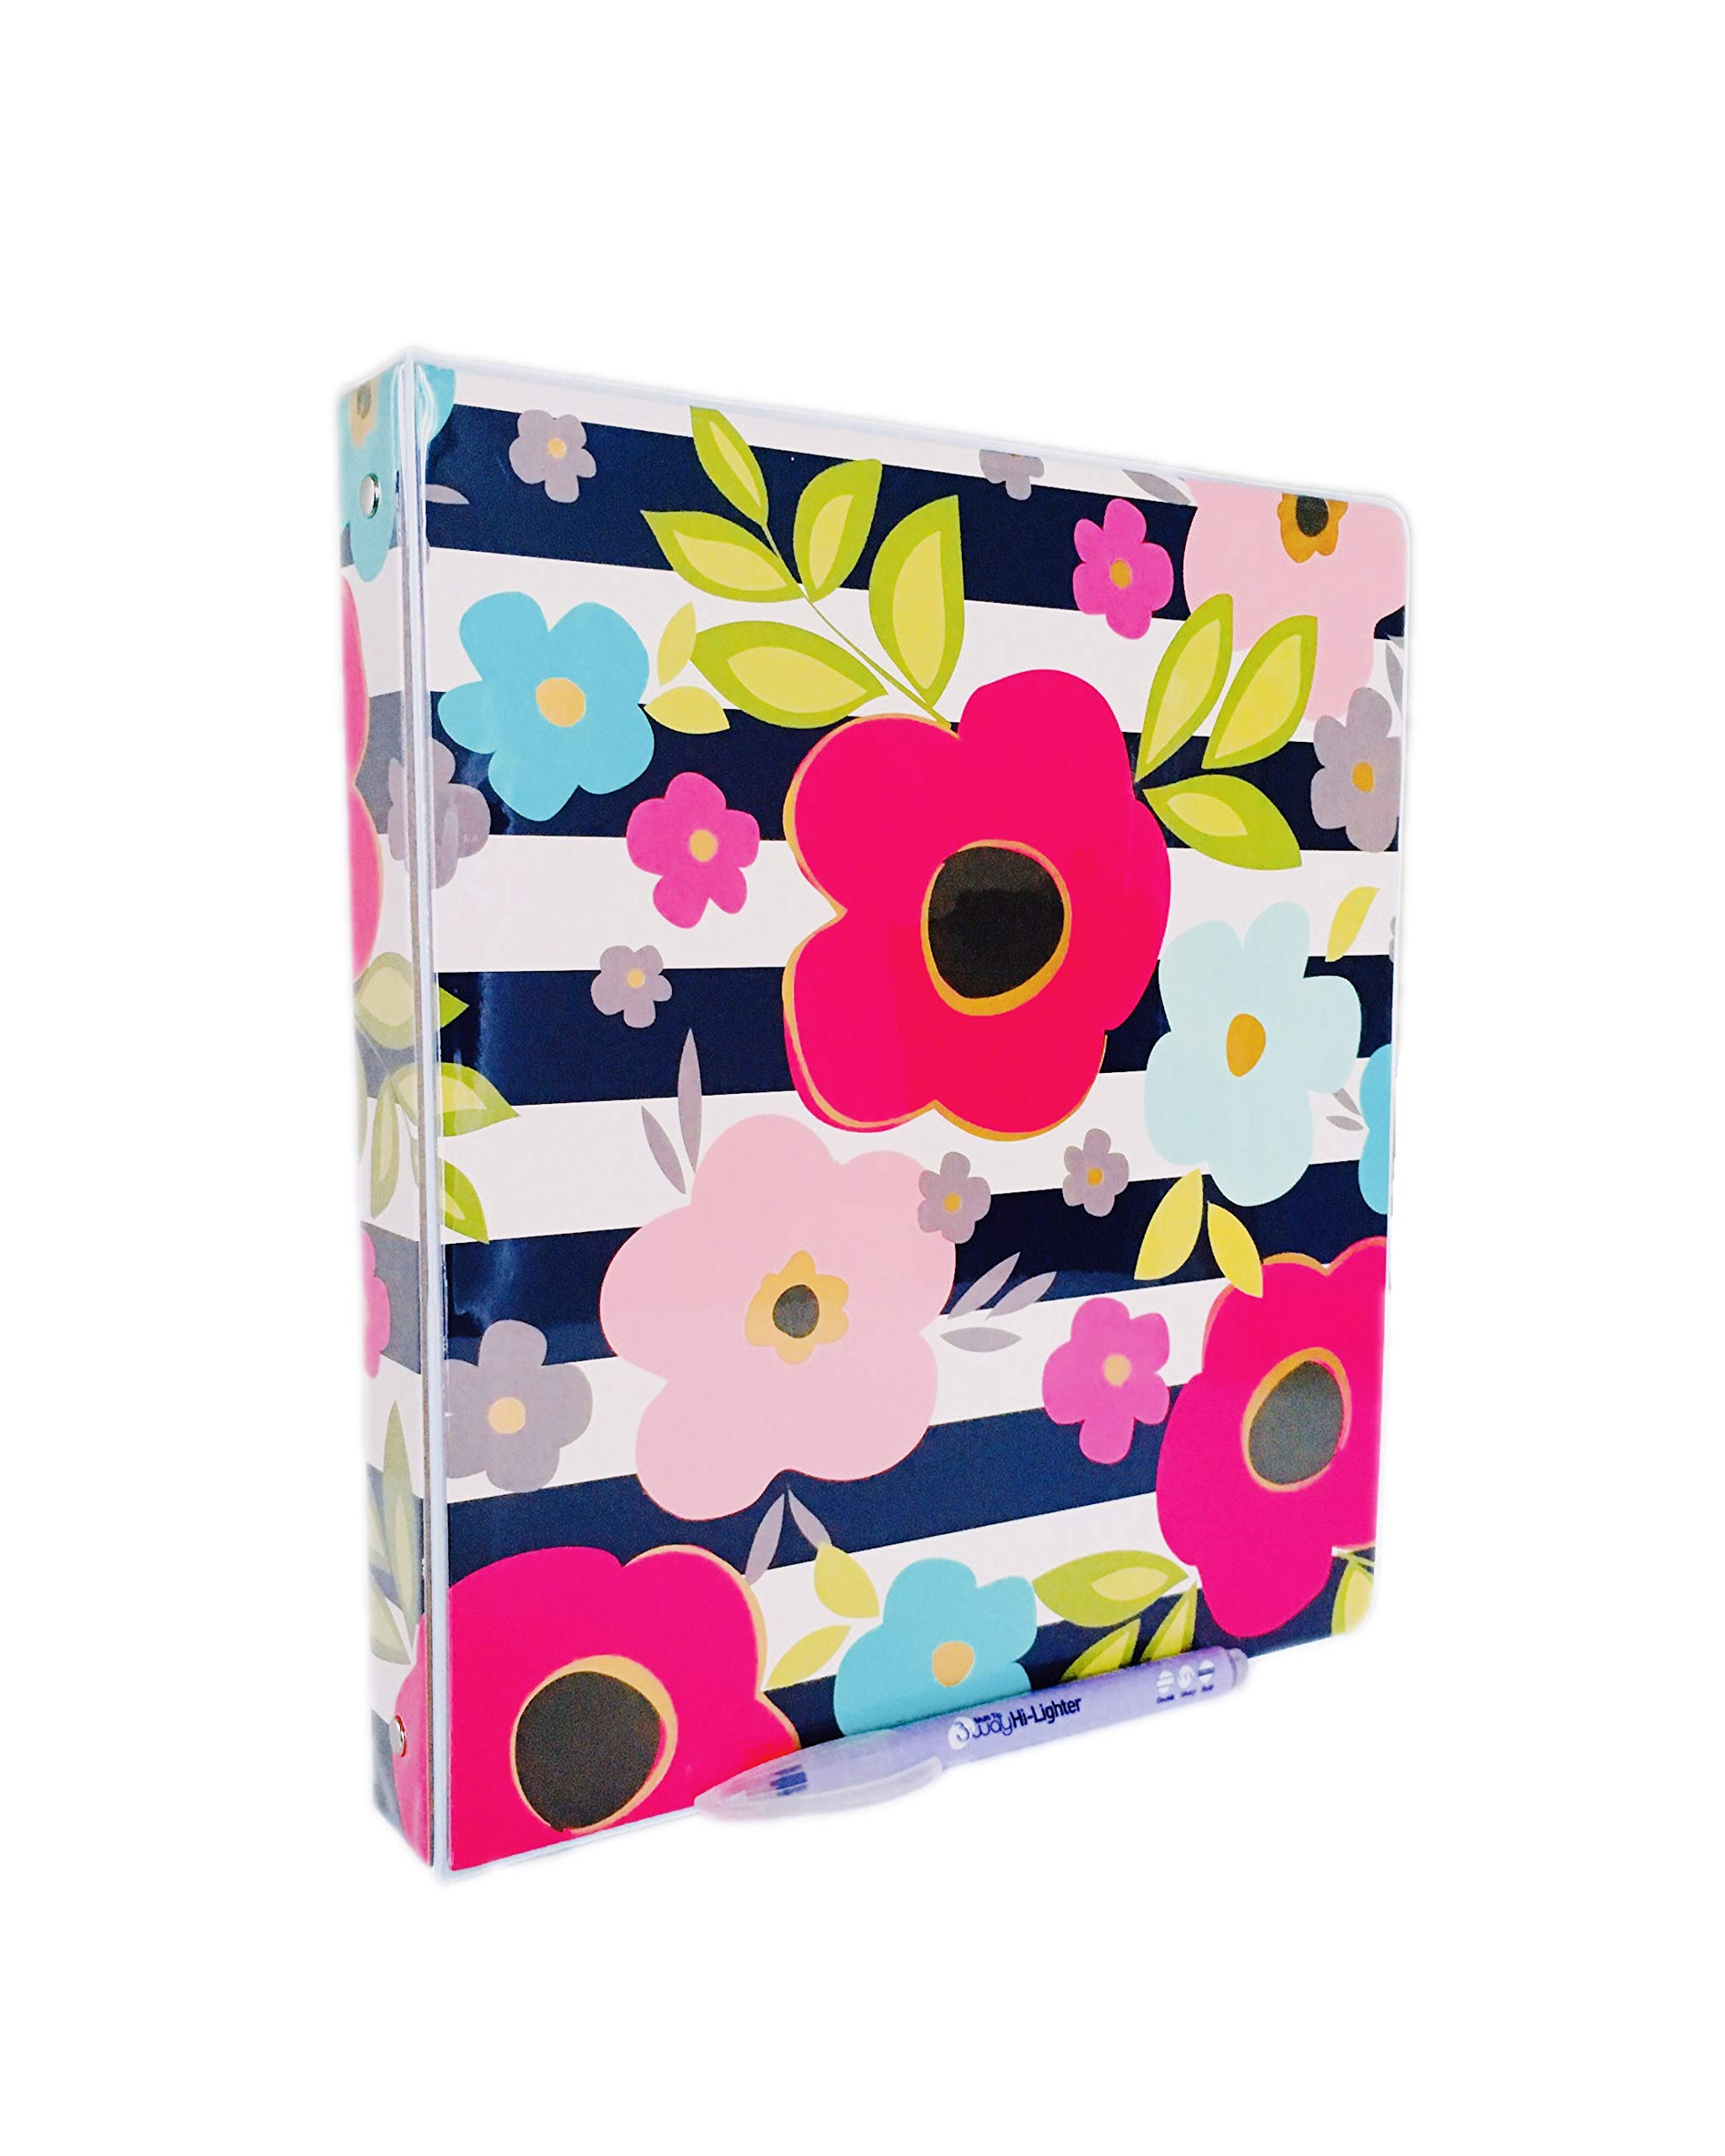 1'' Binder, Vinyl, 1.50 x 10.40 x 11.50 Inches 3 Rings Harper Collection by Pink Light Design and 3 Way Highlighter (Flower on Stripes)